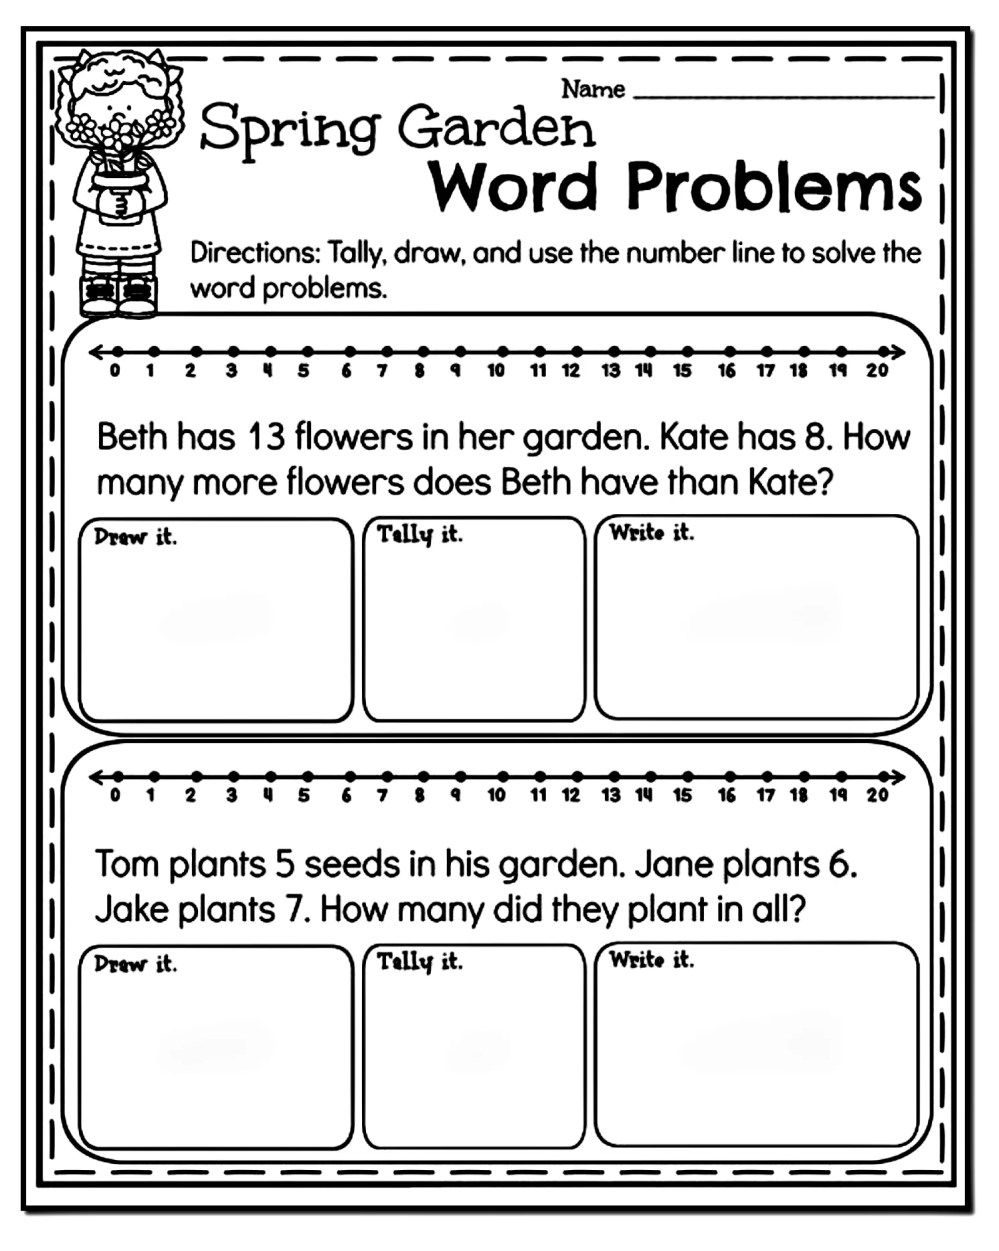 medium resolution of 10 Amazing 1st Grade Math Word Problems Worksheets Samples   Worksheet Hero